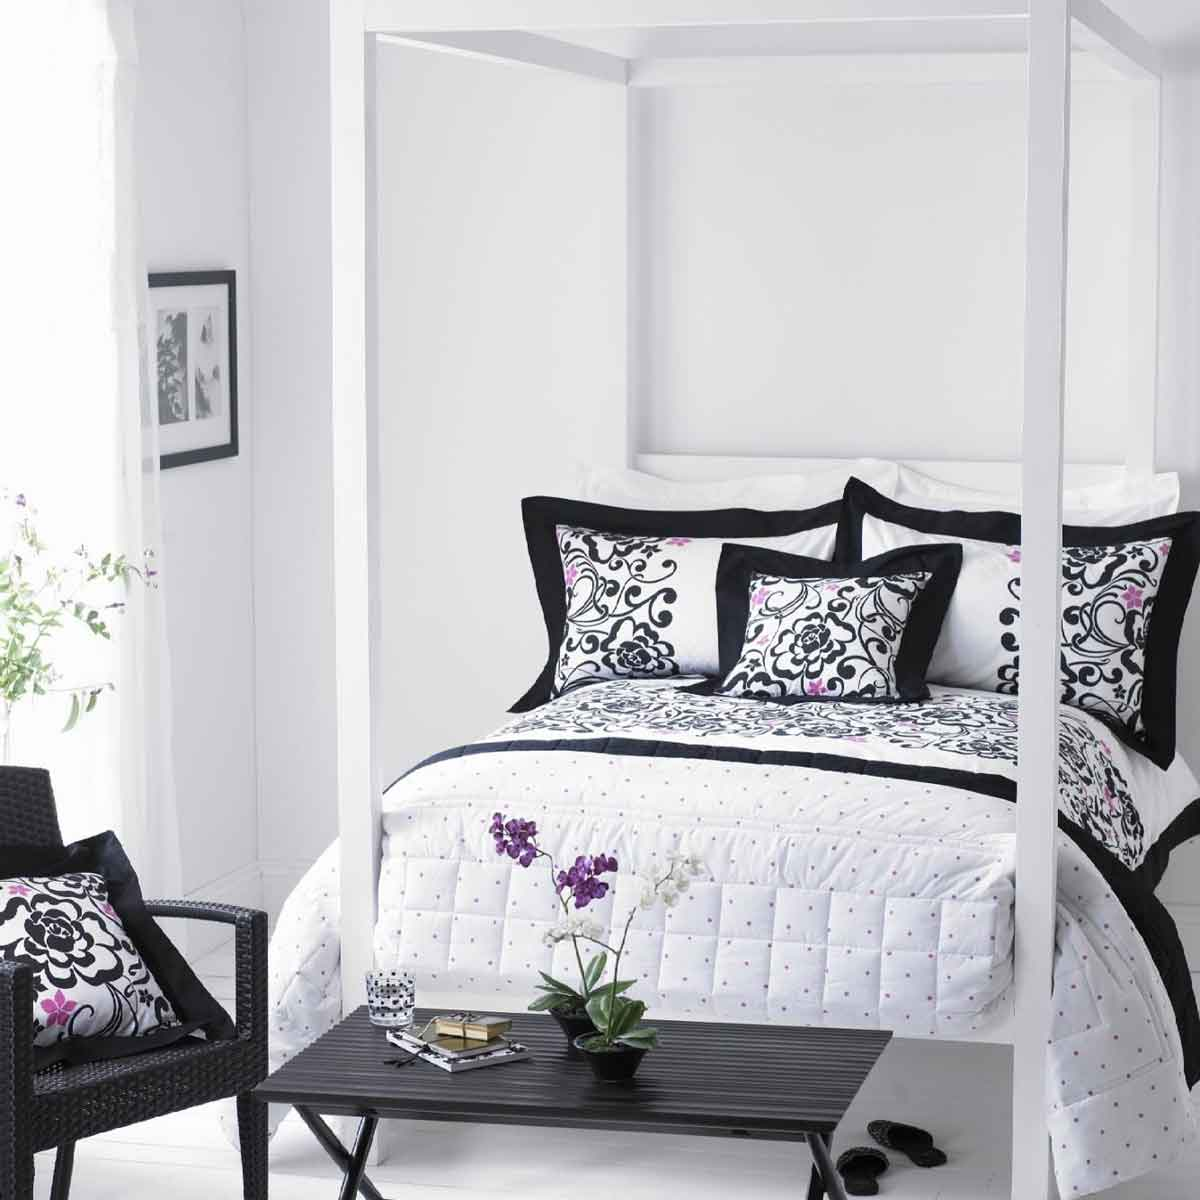 Image Result For Black White And Pink Bedroom Decorating Ideas